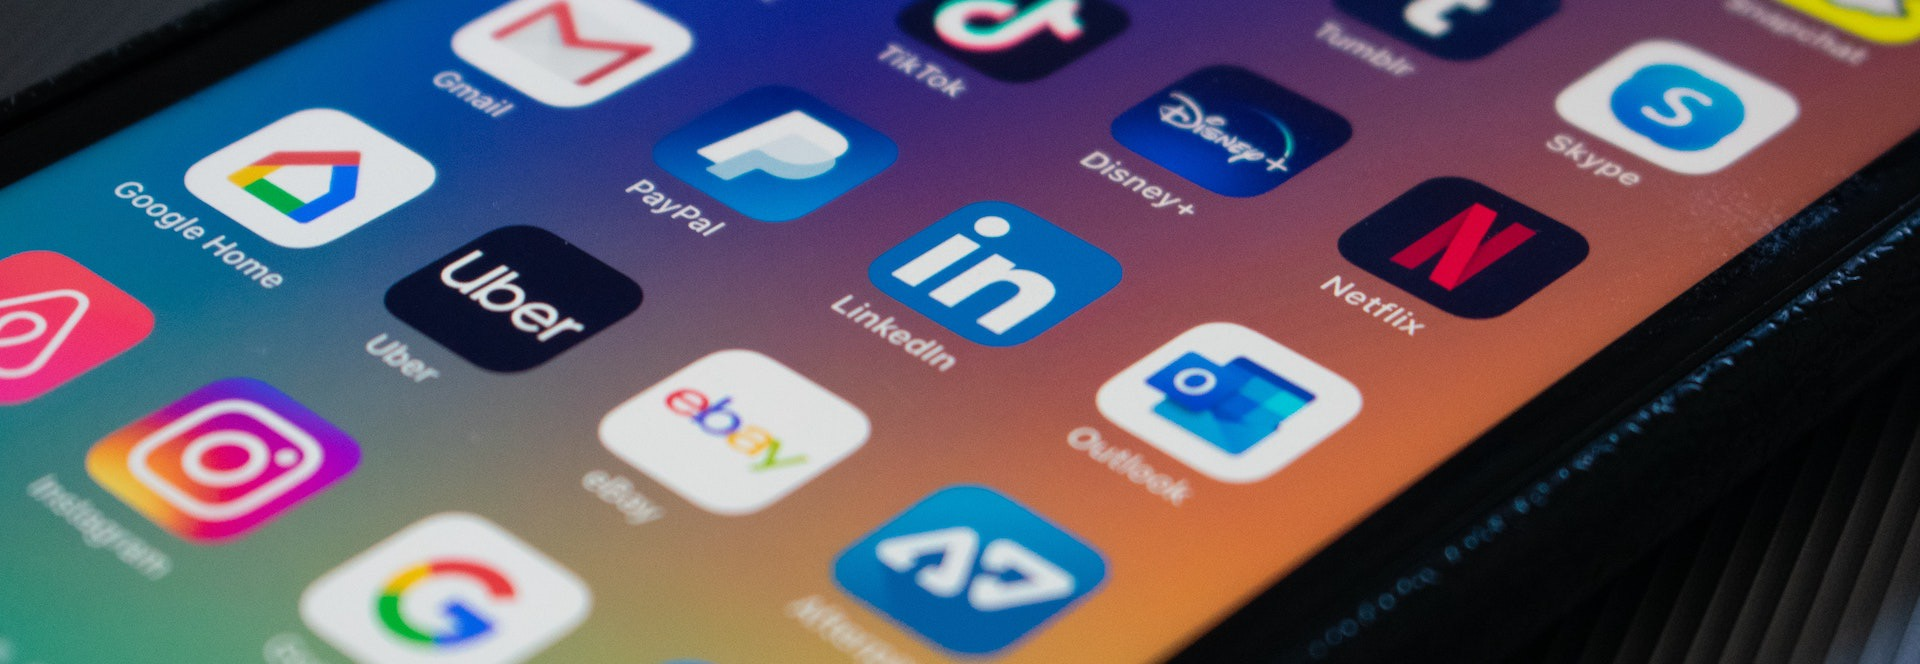 4 Benefits of Having a LinkedIn Profile for Your Business